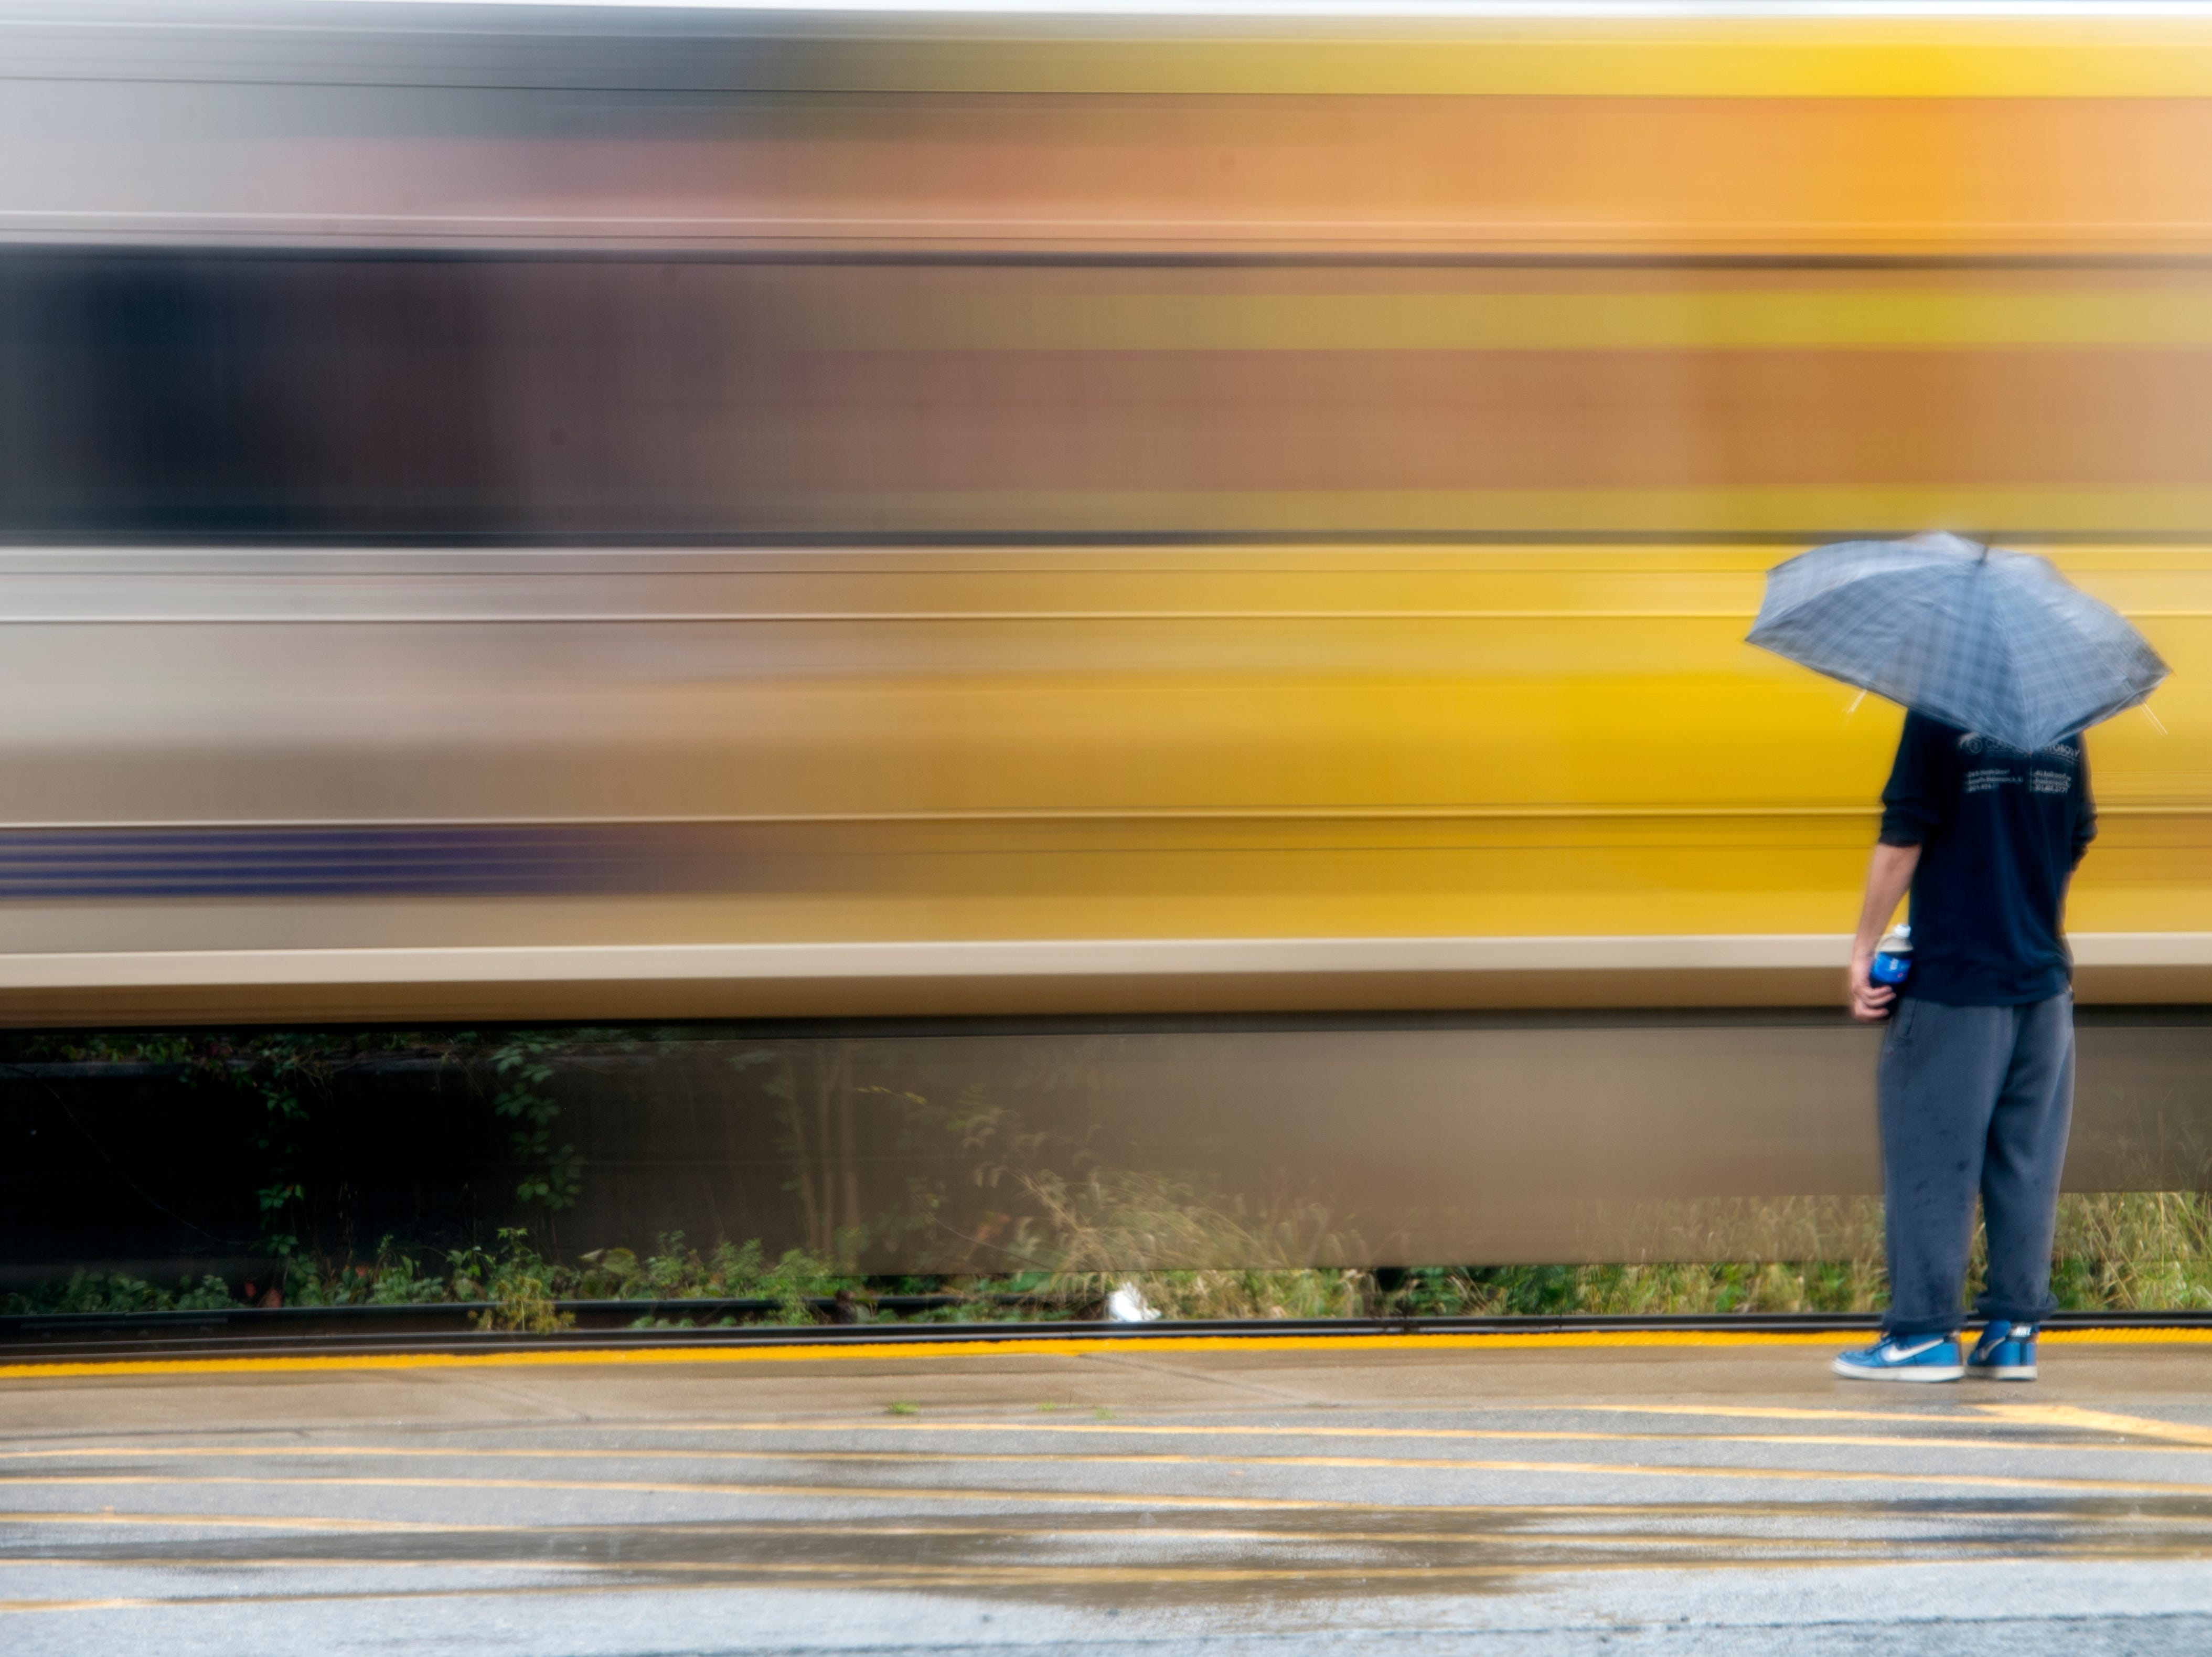 A train passes by as a man waits in the rain with an umbrella at Essex Street Station in Hackensack on Thursday, October 11, 2018.